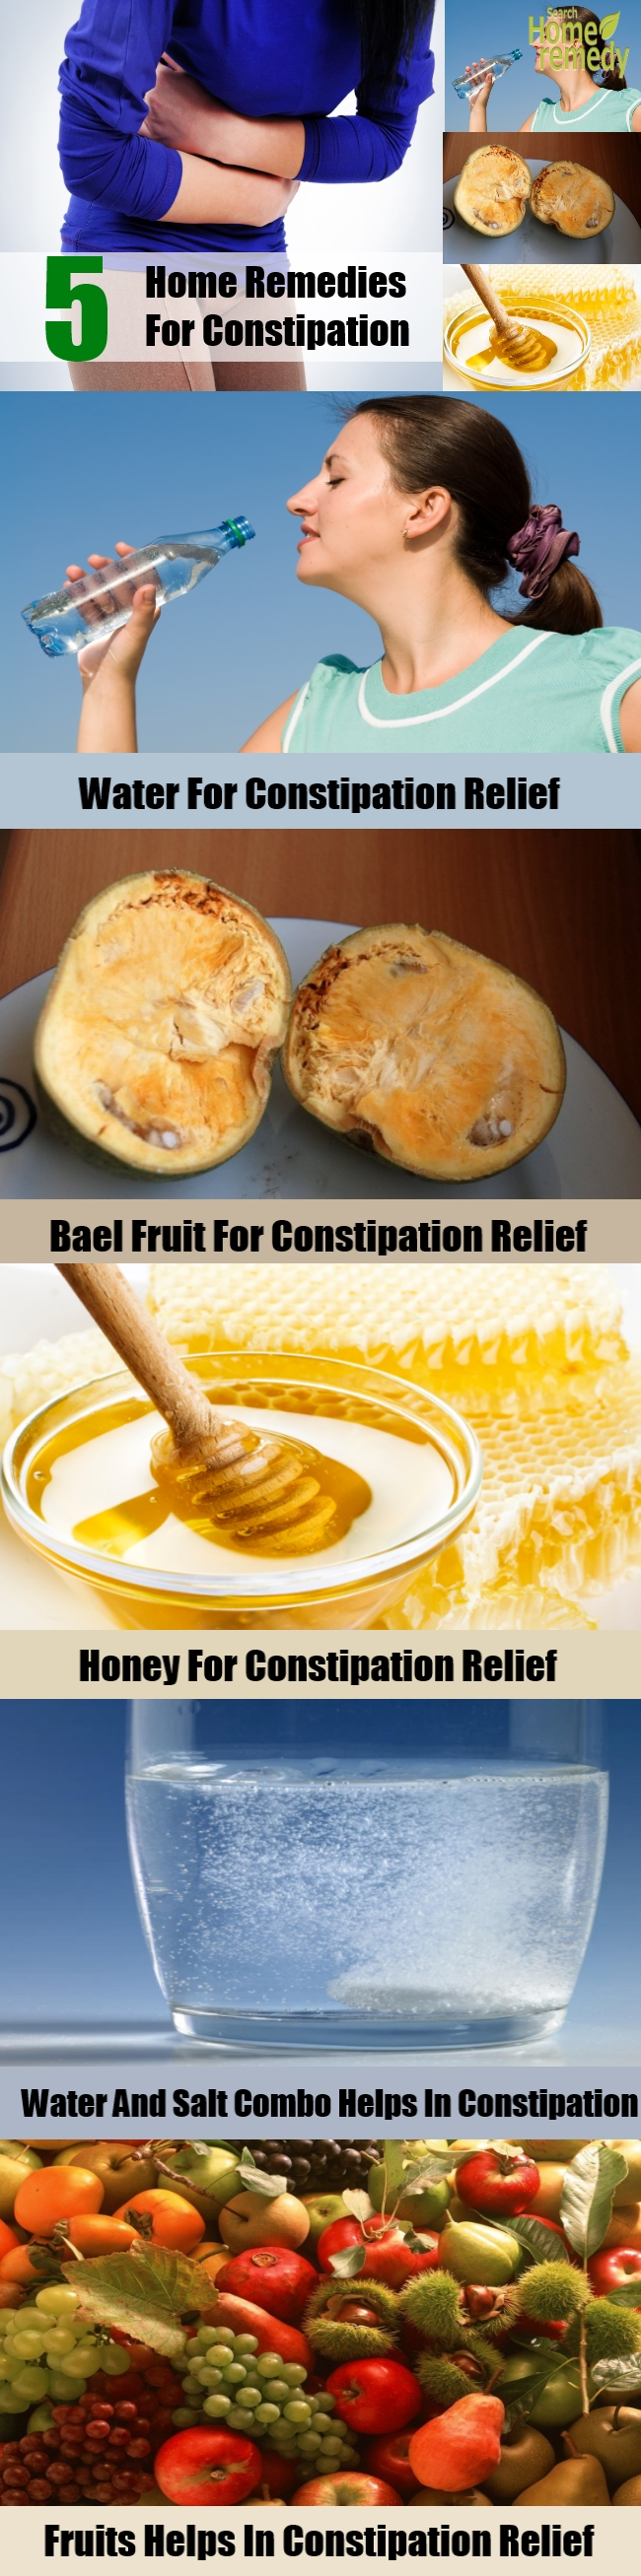 5 Home Remedies For Constipation